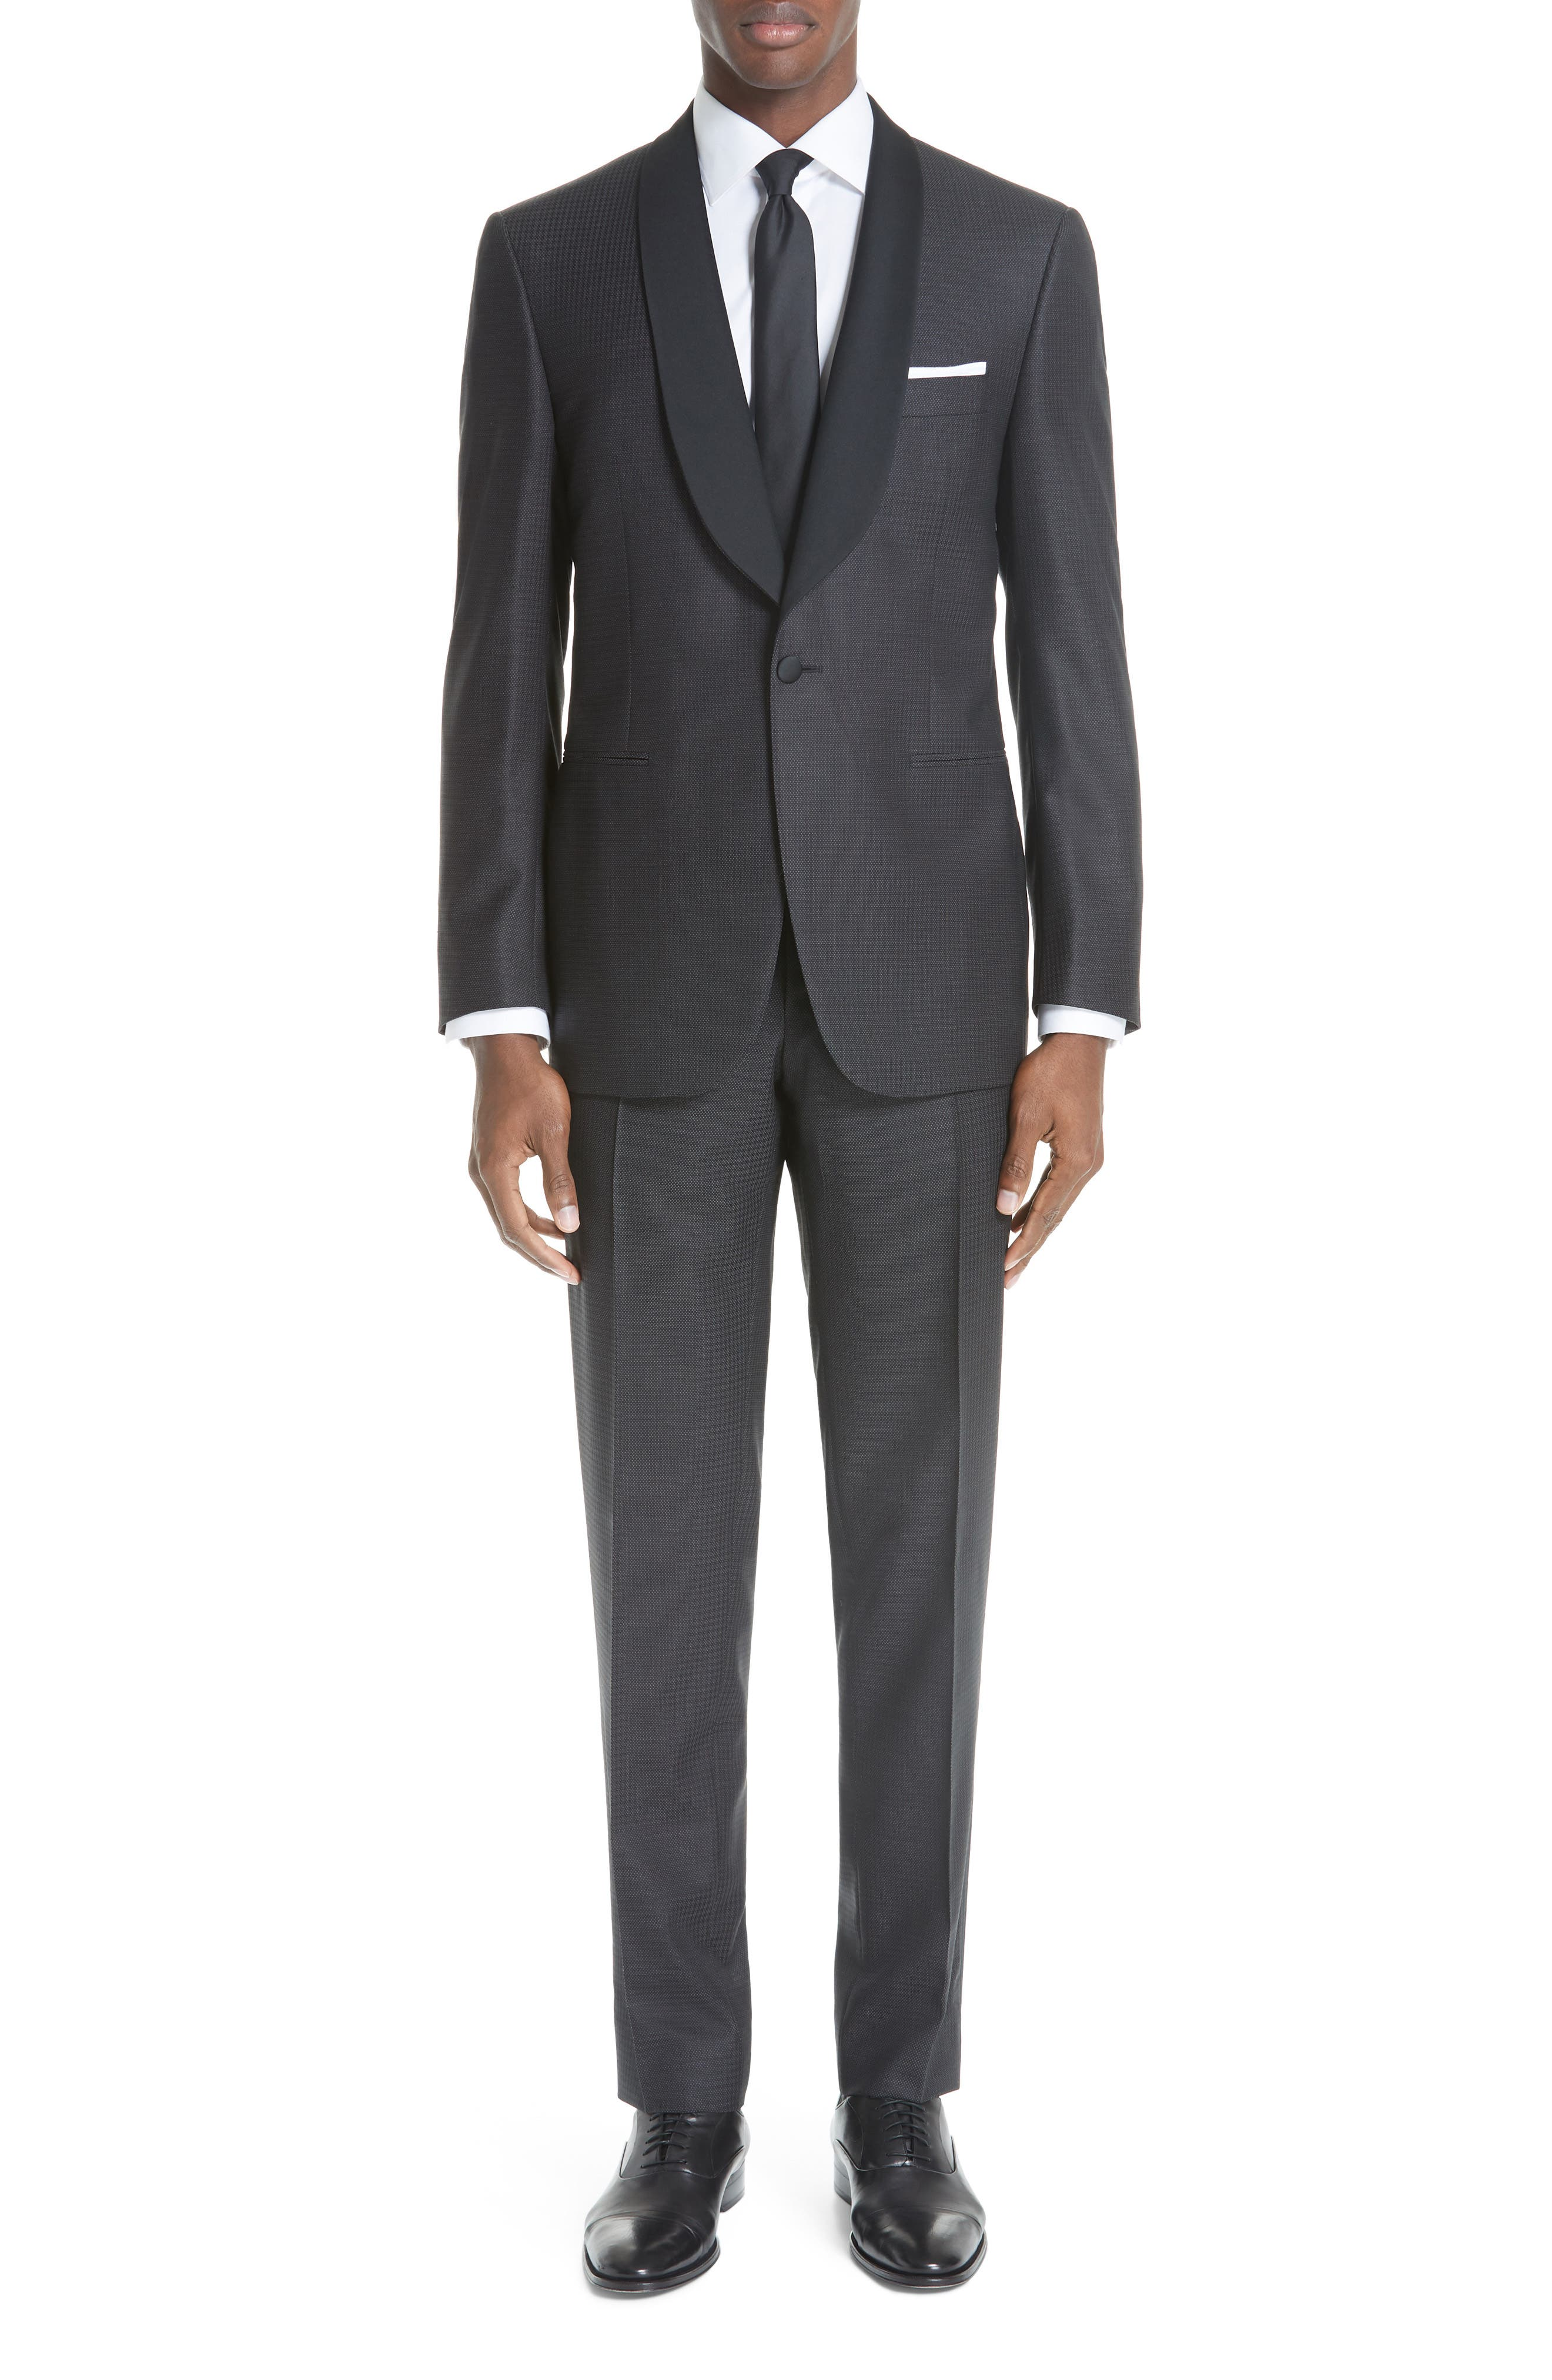 CANALI, Classic Fit Wool Tuxedo, Main thumbnail 1, color, CHARCOAL